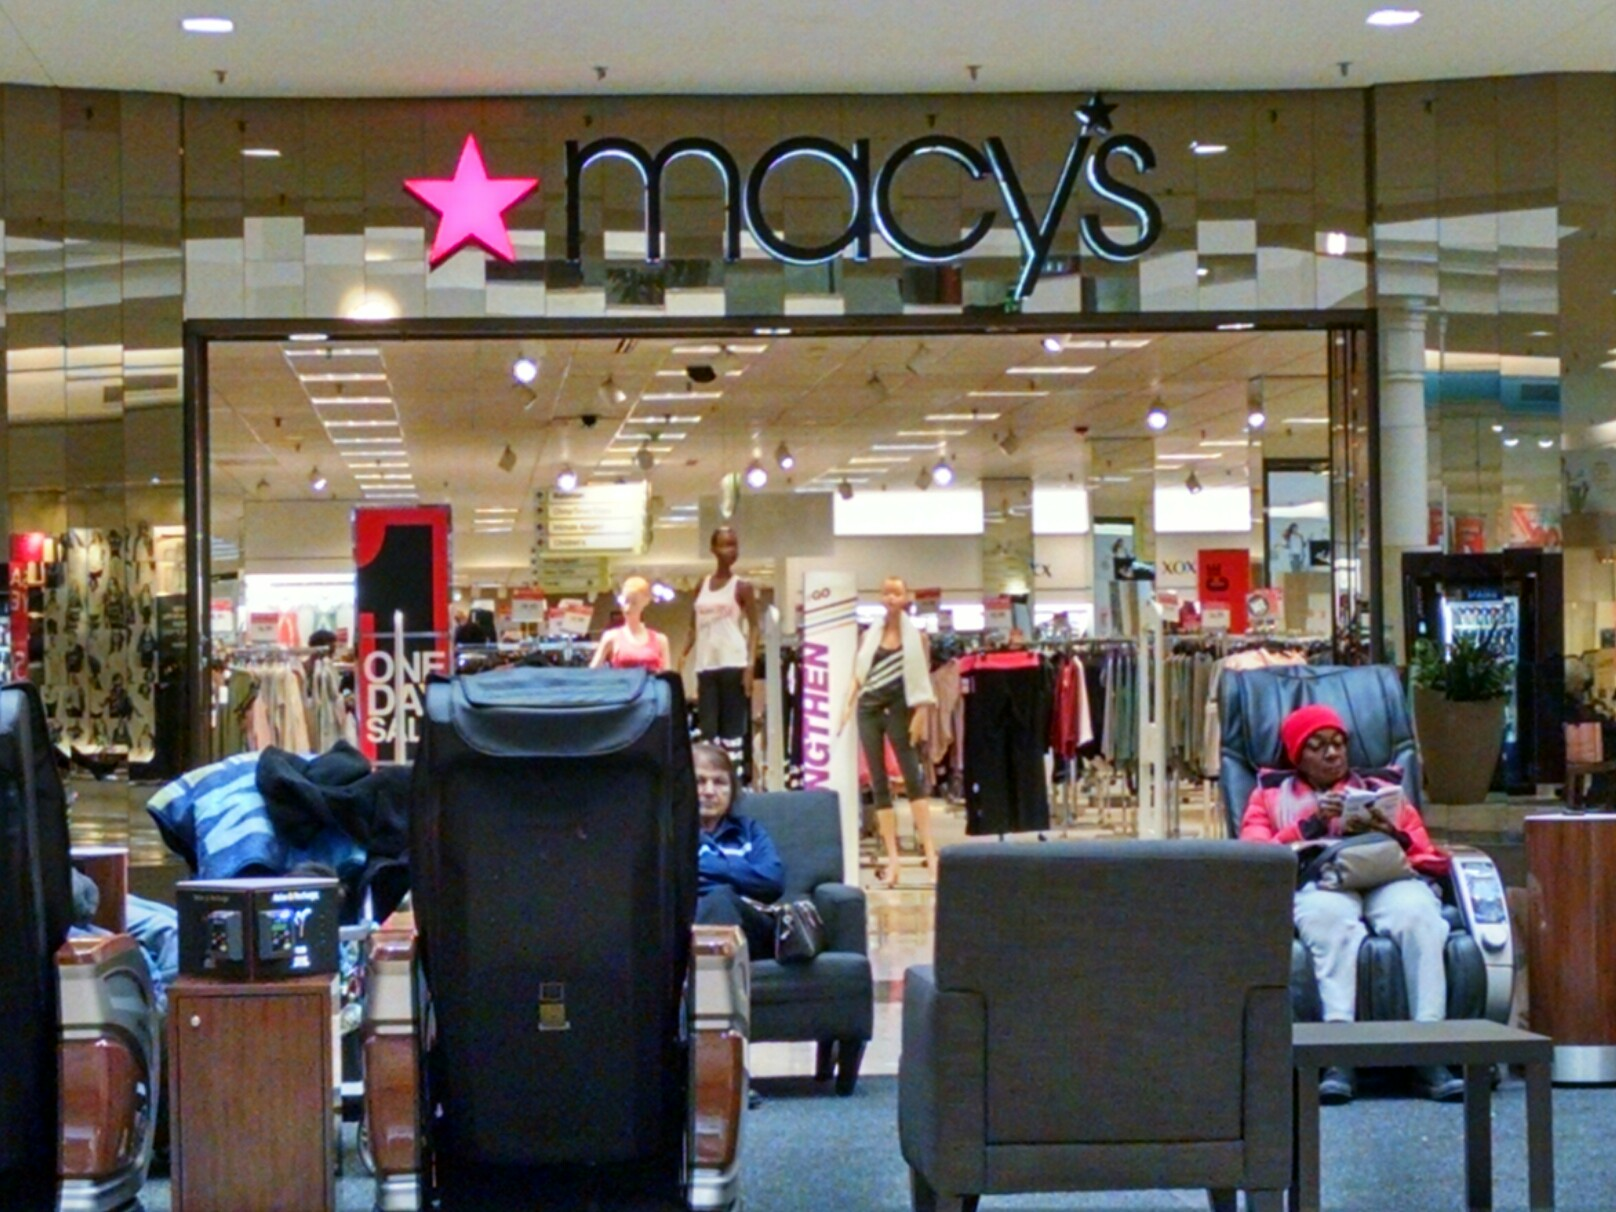 Macy's 2210 Southlake Mall, Merrillville, IN 46410 - CLOSED - YP.com